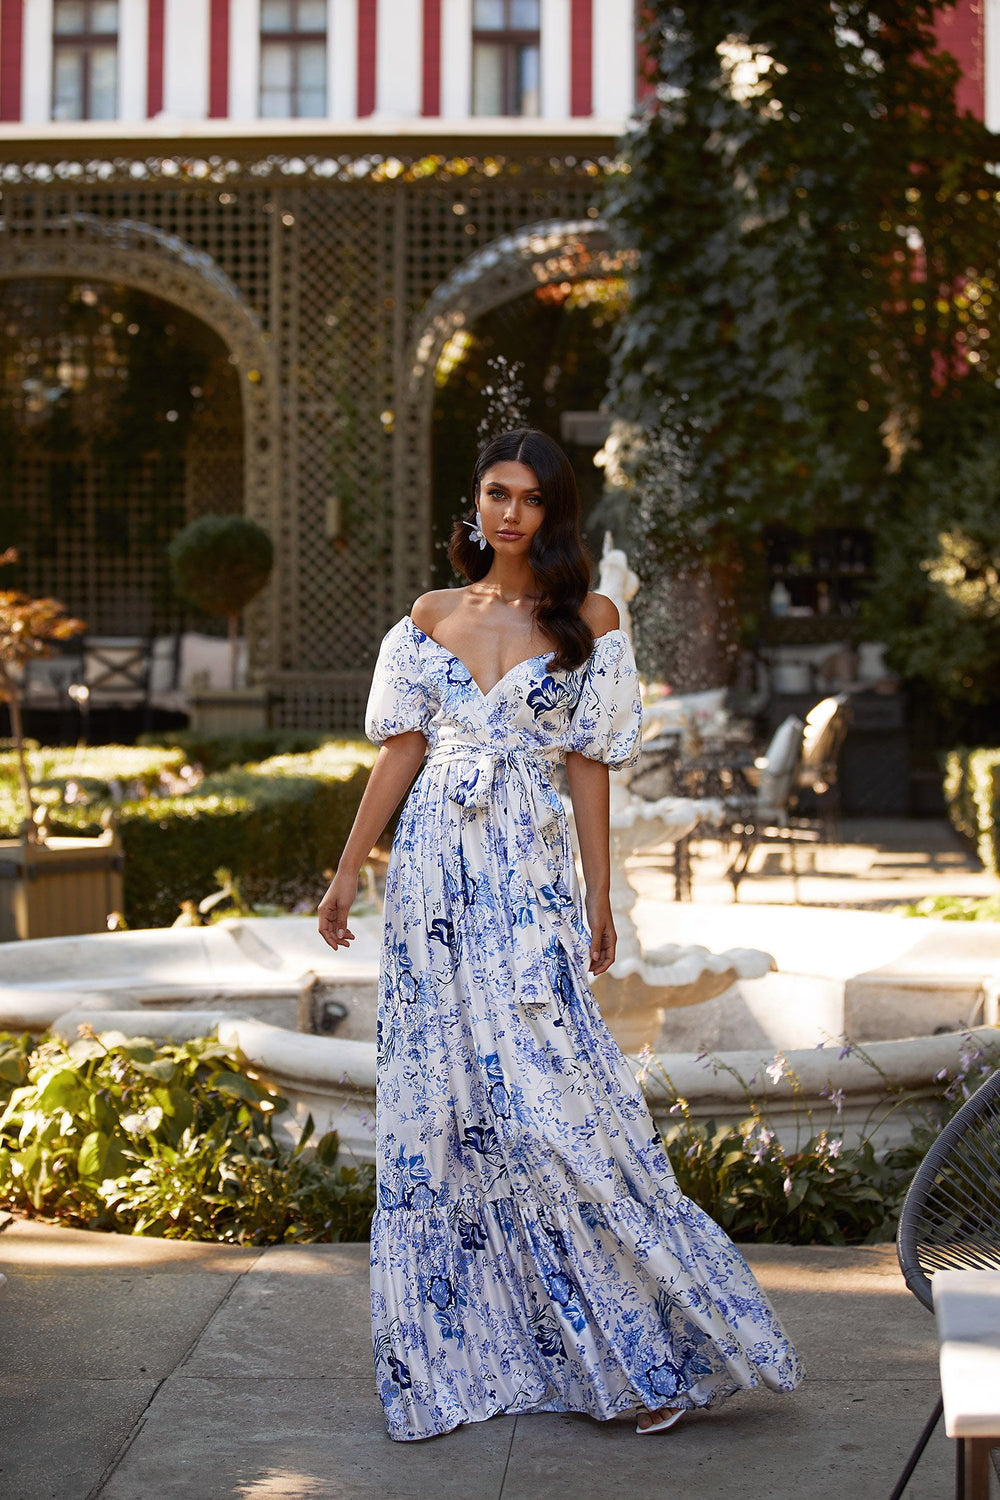 Dara Dress - White & Blue Floral Maxi Dress with Off-Shoulder Sleeves